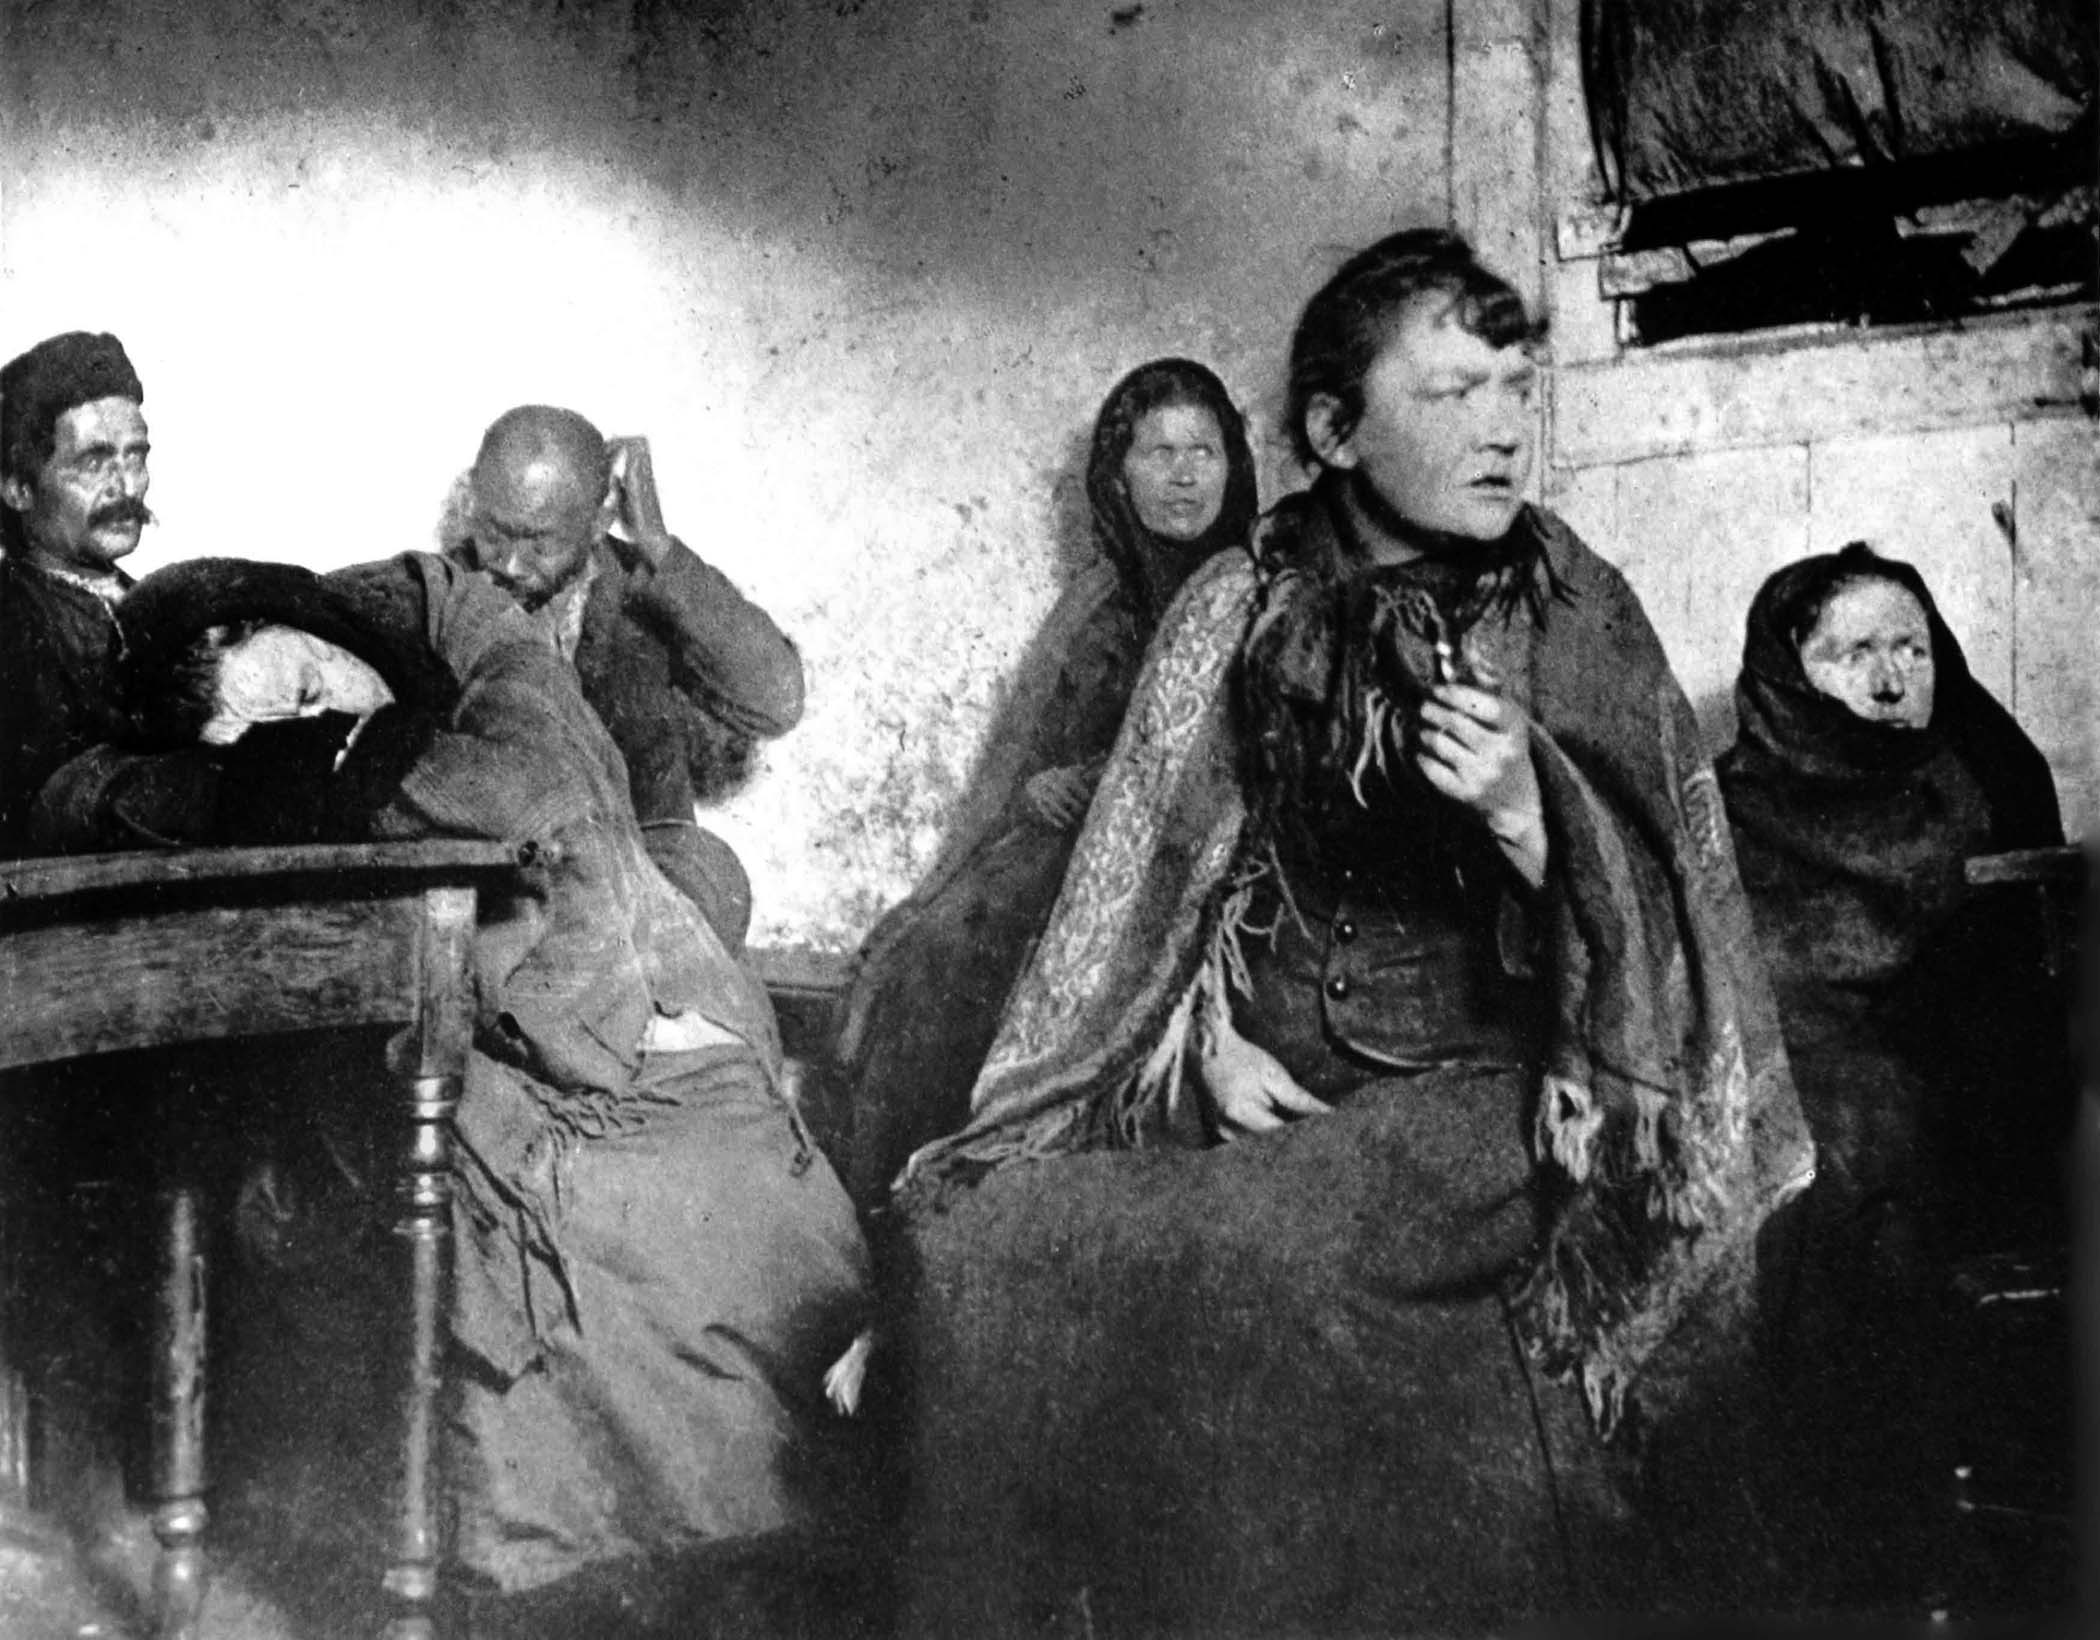 Hell on earth. Homeless women sit all night in unheated basement dives. Photo made possible by Jacob Riis' introduction of flash photography in the United States journalism.